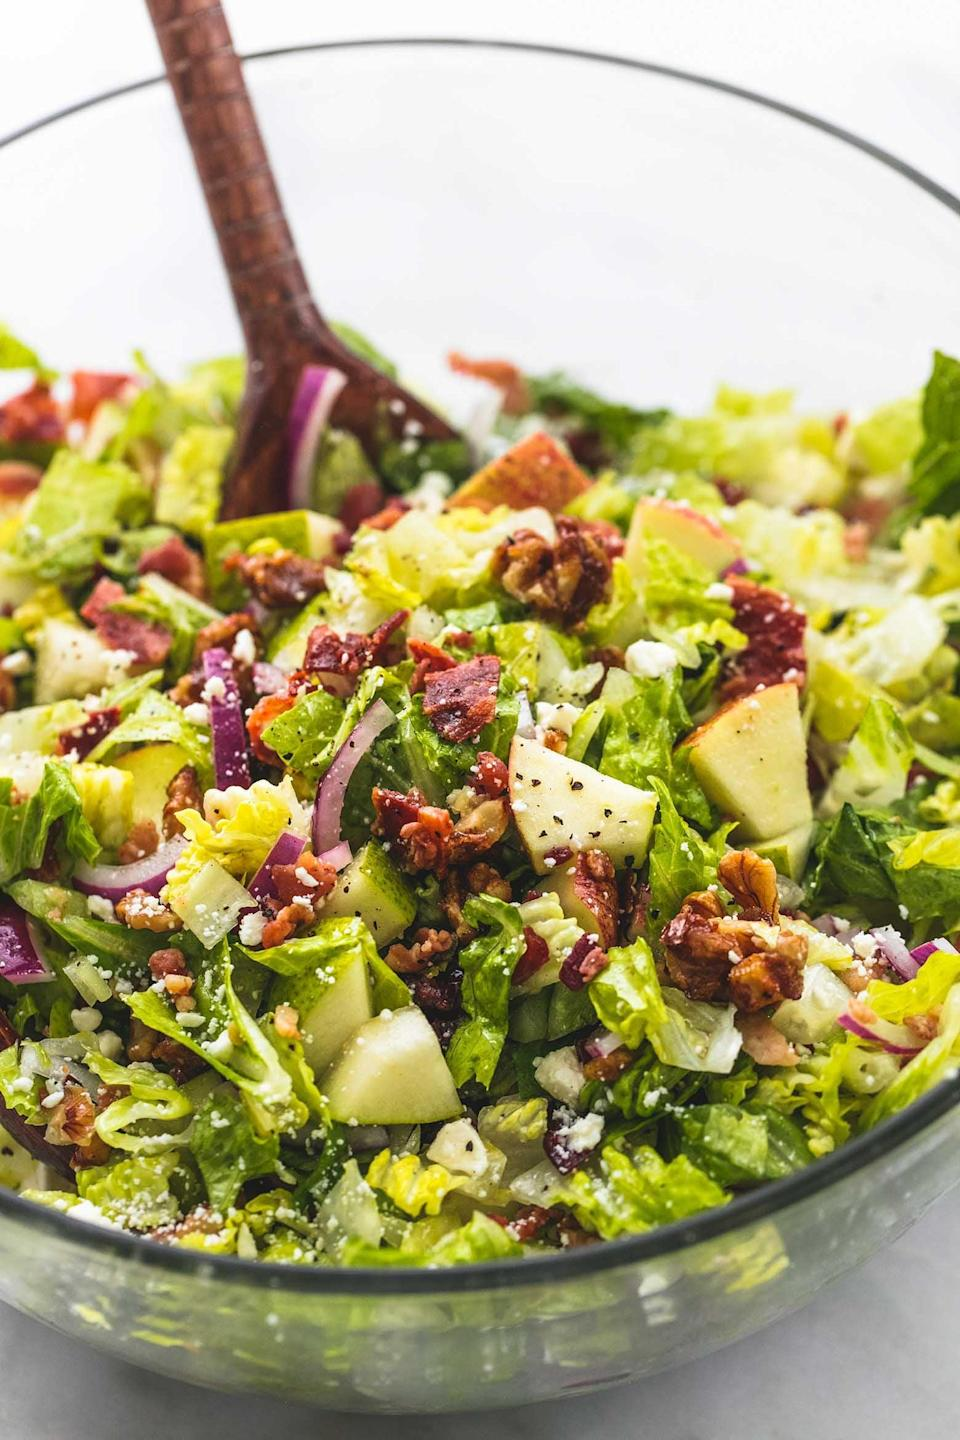 "<p>This salad's sweet and tangy apple cider dressing balances out the contrasting flavors of sweet apples, pears, and candied pecans with savory bacon and feta cheese. Just a few minutes of easy chopping yields a healthy side that anyone will love. </p> <p><strong>Get the recipe:</strong> <a href=""http://www.lecremedelacrumb.com/chopped-autumn-salad-apple-cider-dressing/"" class=""link rapid-noclick-resp"" rel=""nofollow noopener"" target=""_blank"" data-ylk=""slk:chopped Autumn salad with apple cider dressing"">chopped Autumn salad with apple cider dressing</a></p>"